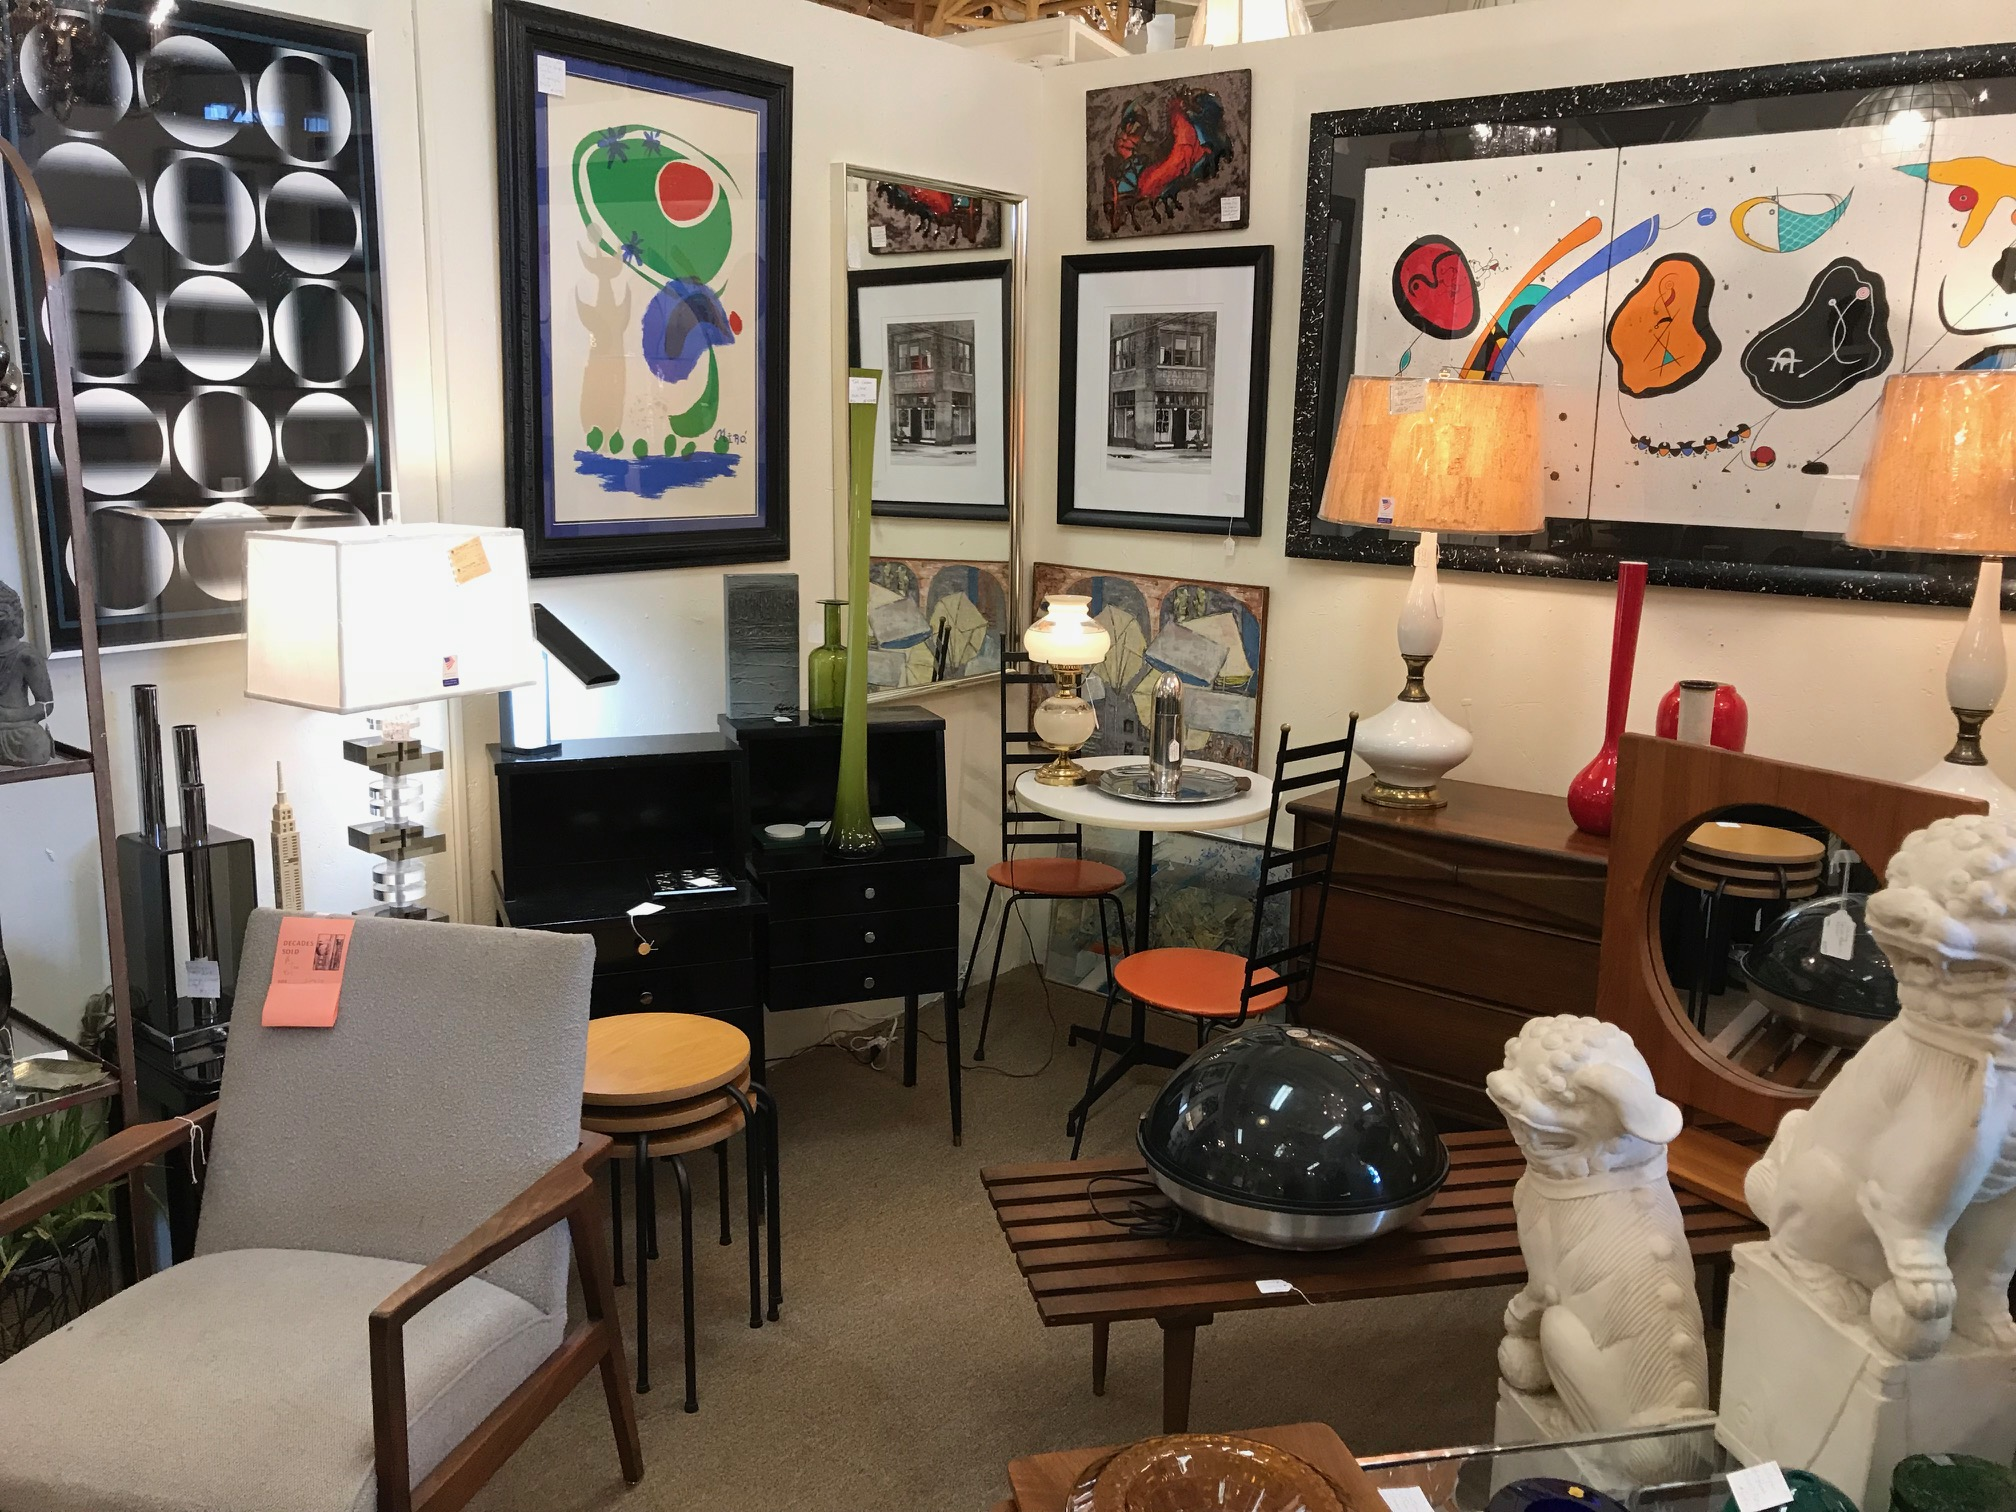 If you are looking for curated funky mid-century modern furnishings and artwork you have to go to   Decades Antiques and Vintage   at 1886 Cheshire Bridge Rd NE.  There are several antique and thriftstores in the area.